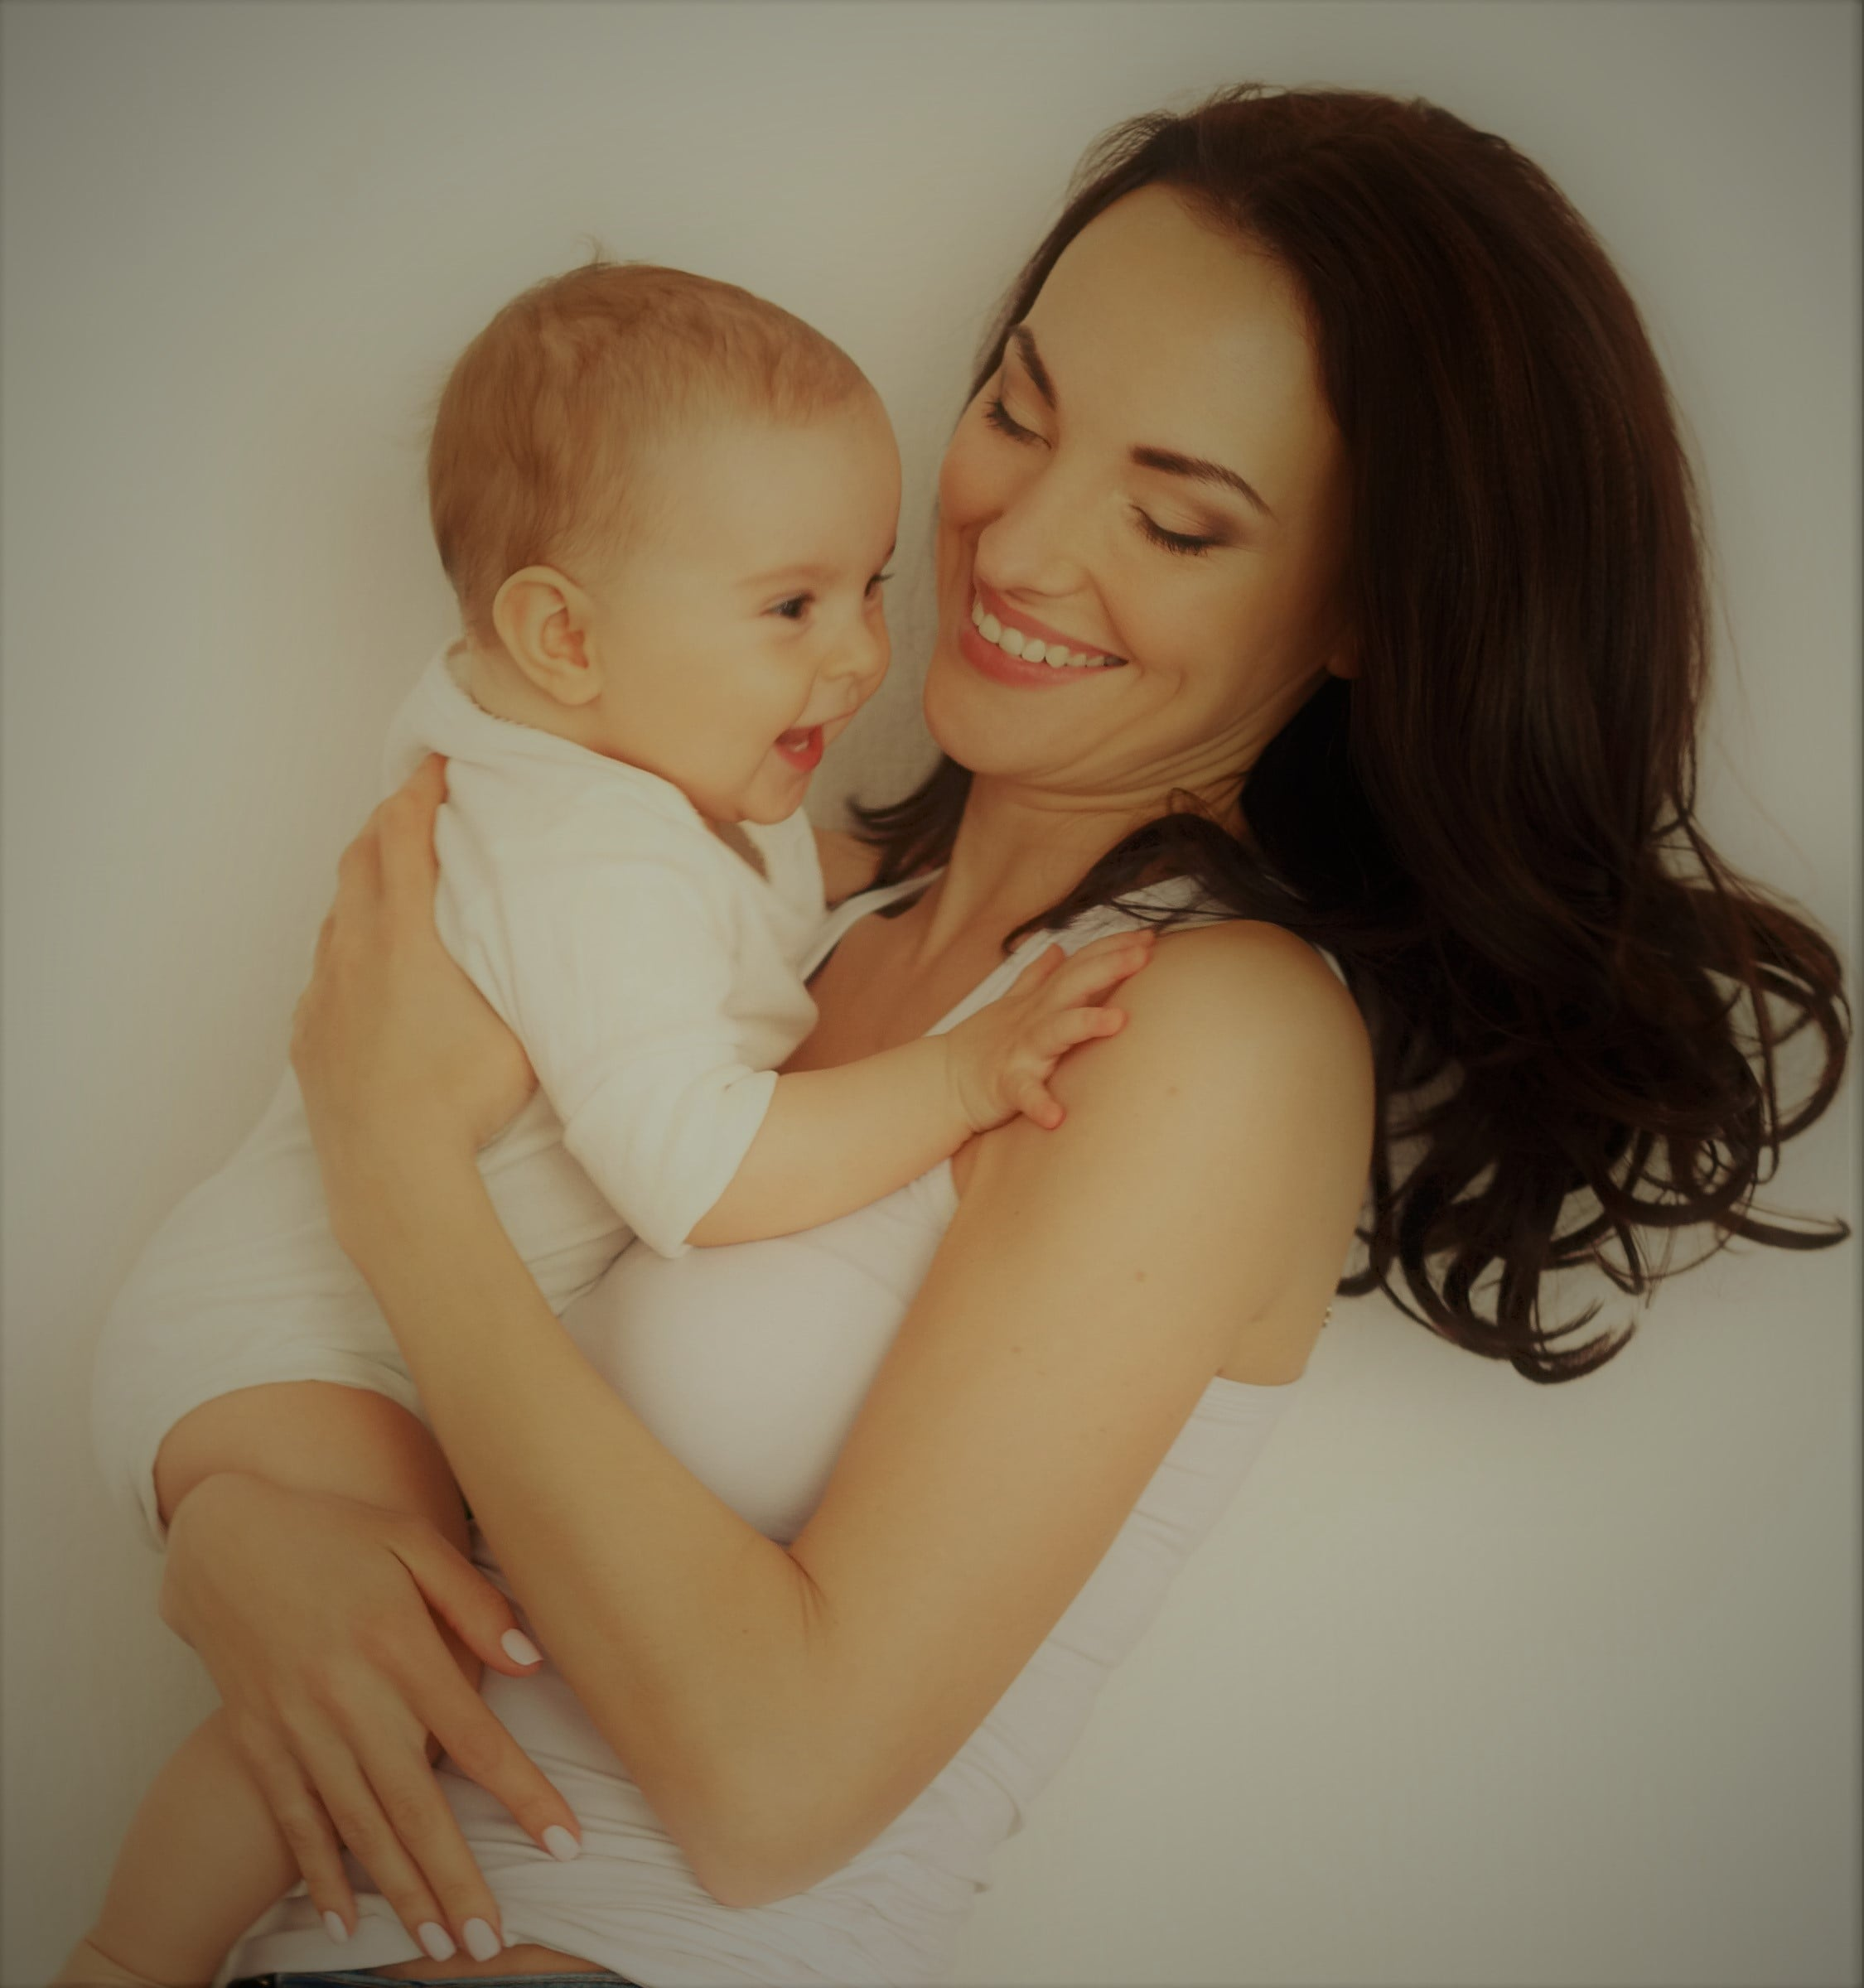 young-happy-mother-smiling-holding-looking-her-baby-daughter-white-wall-min.jpg